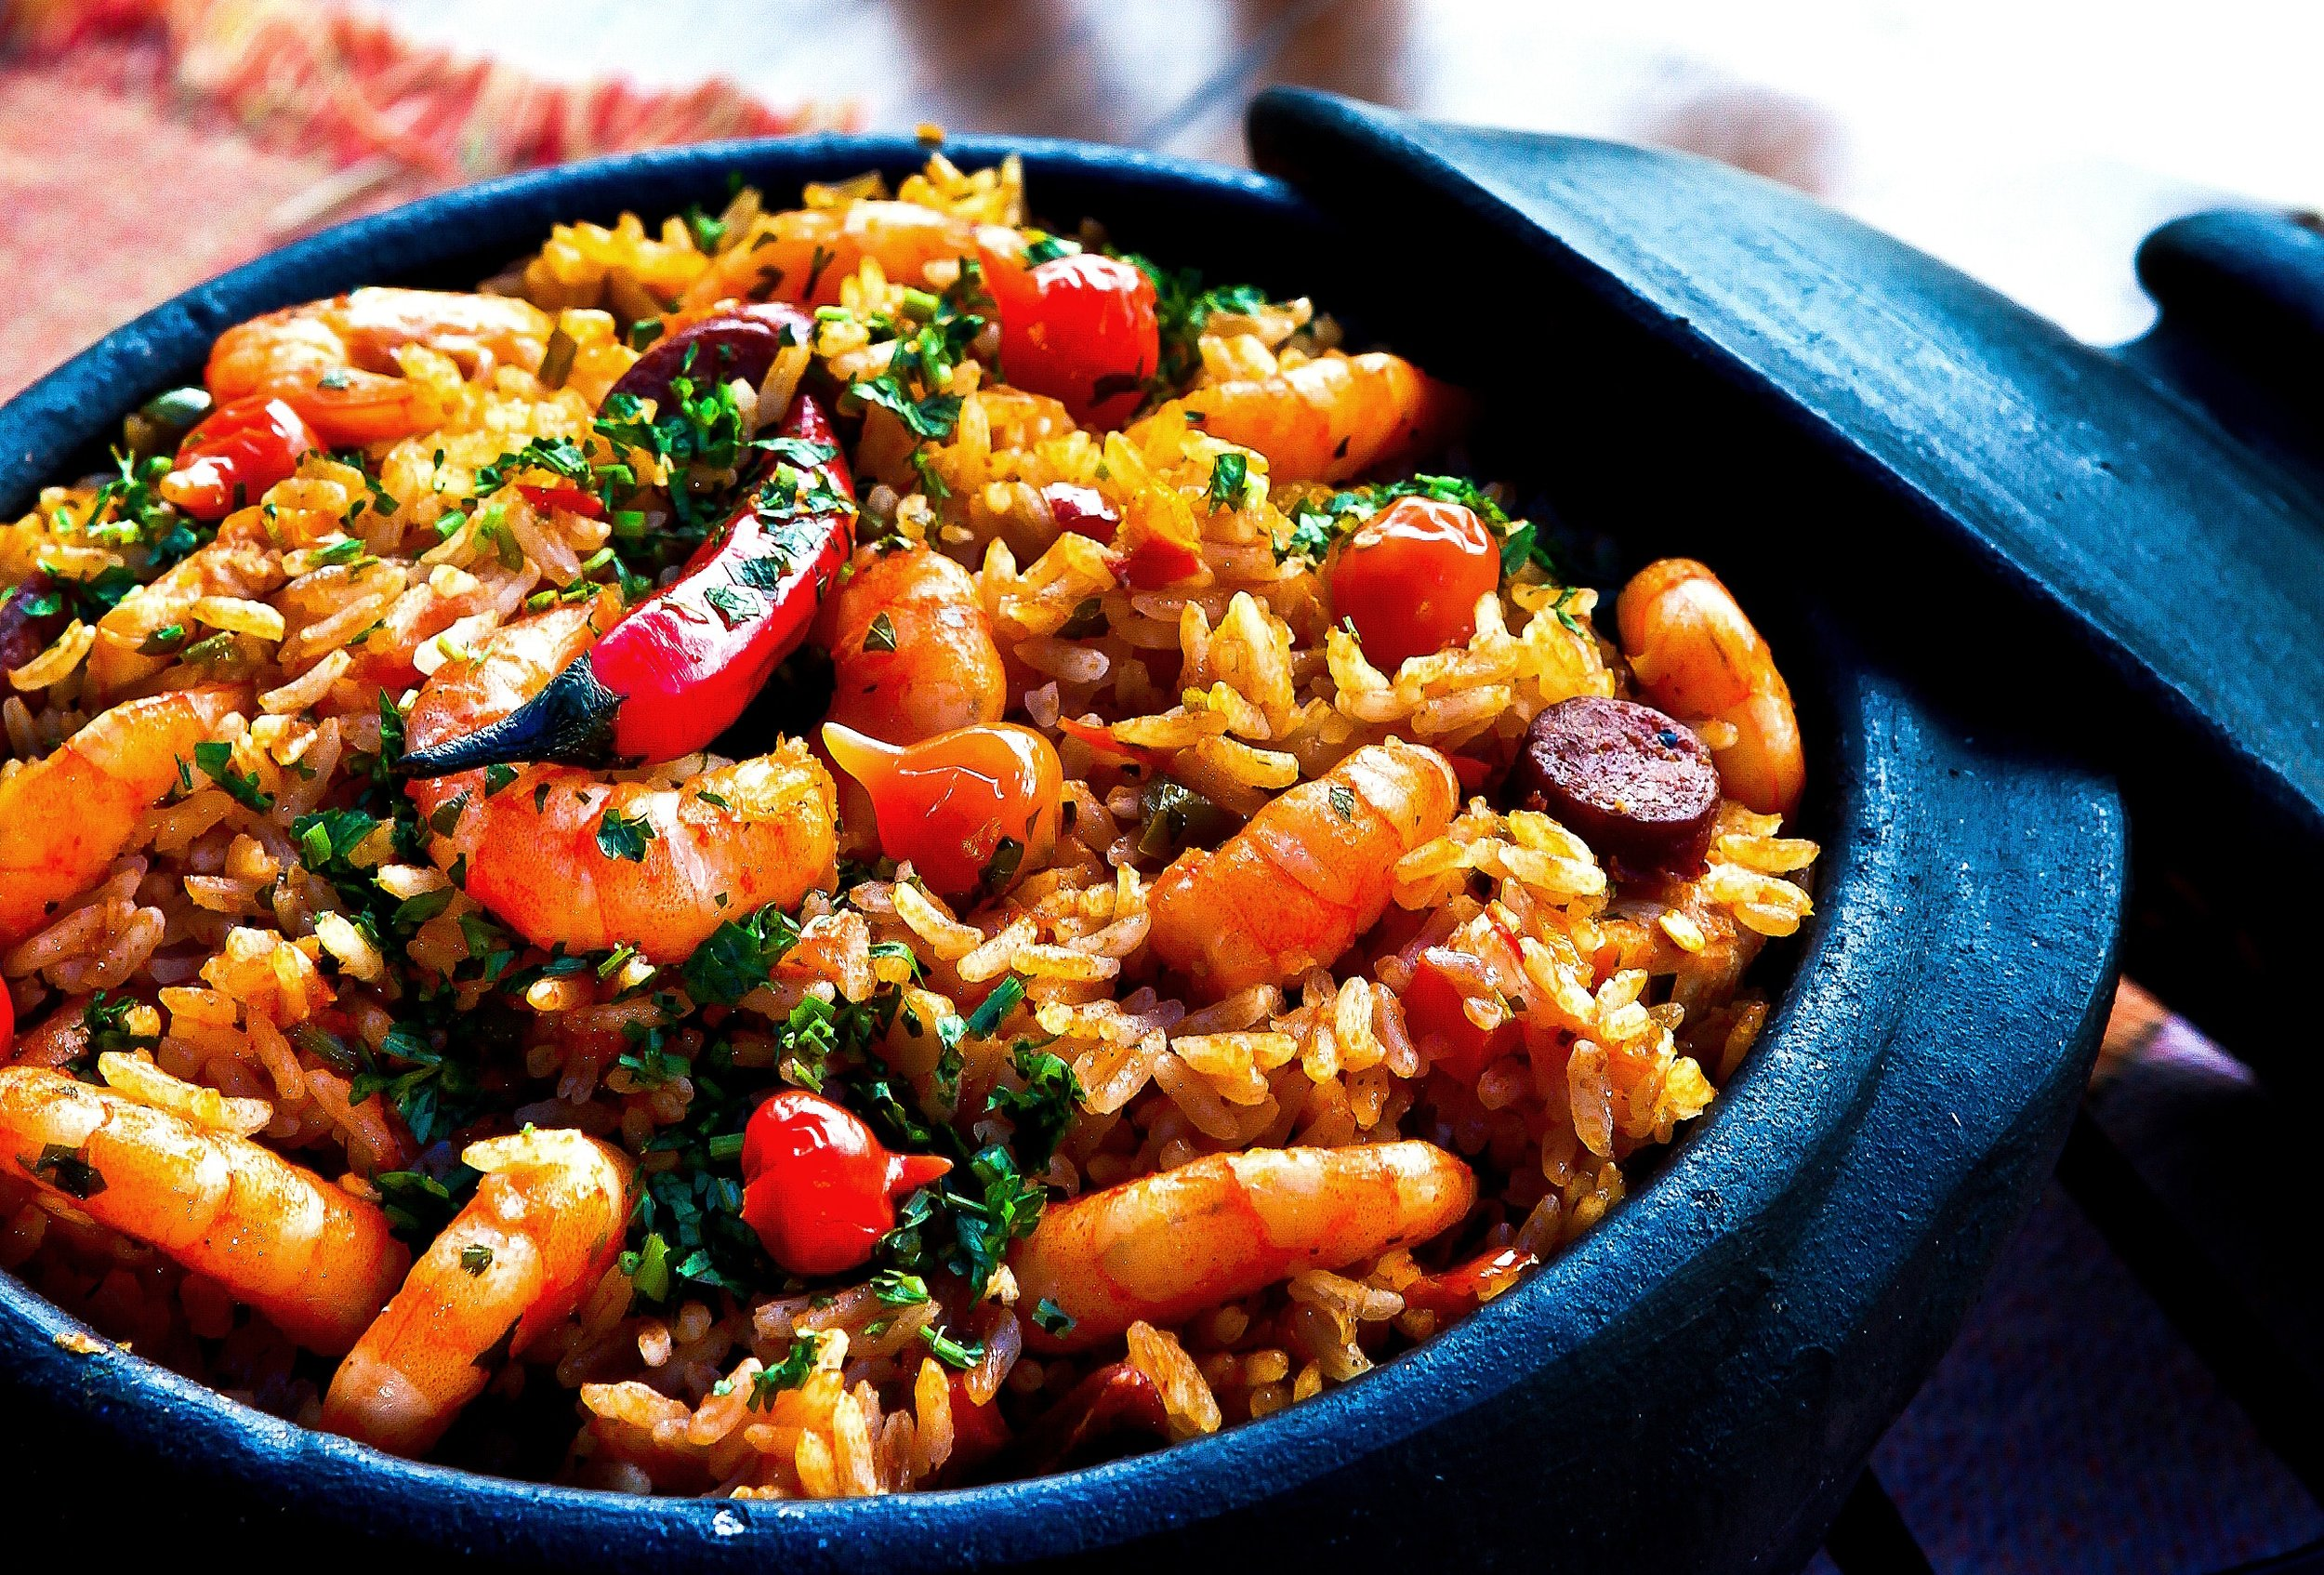 Paella cooking class in Spain